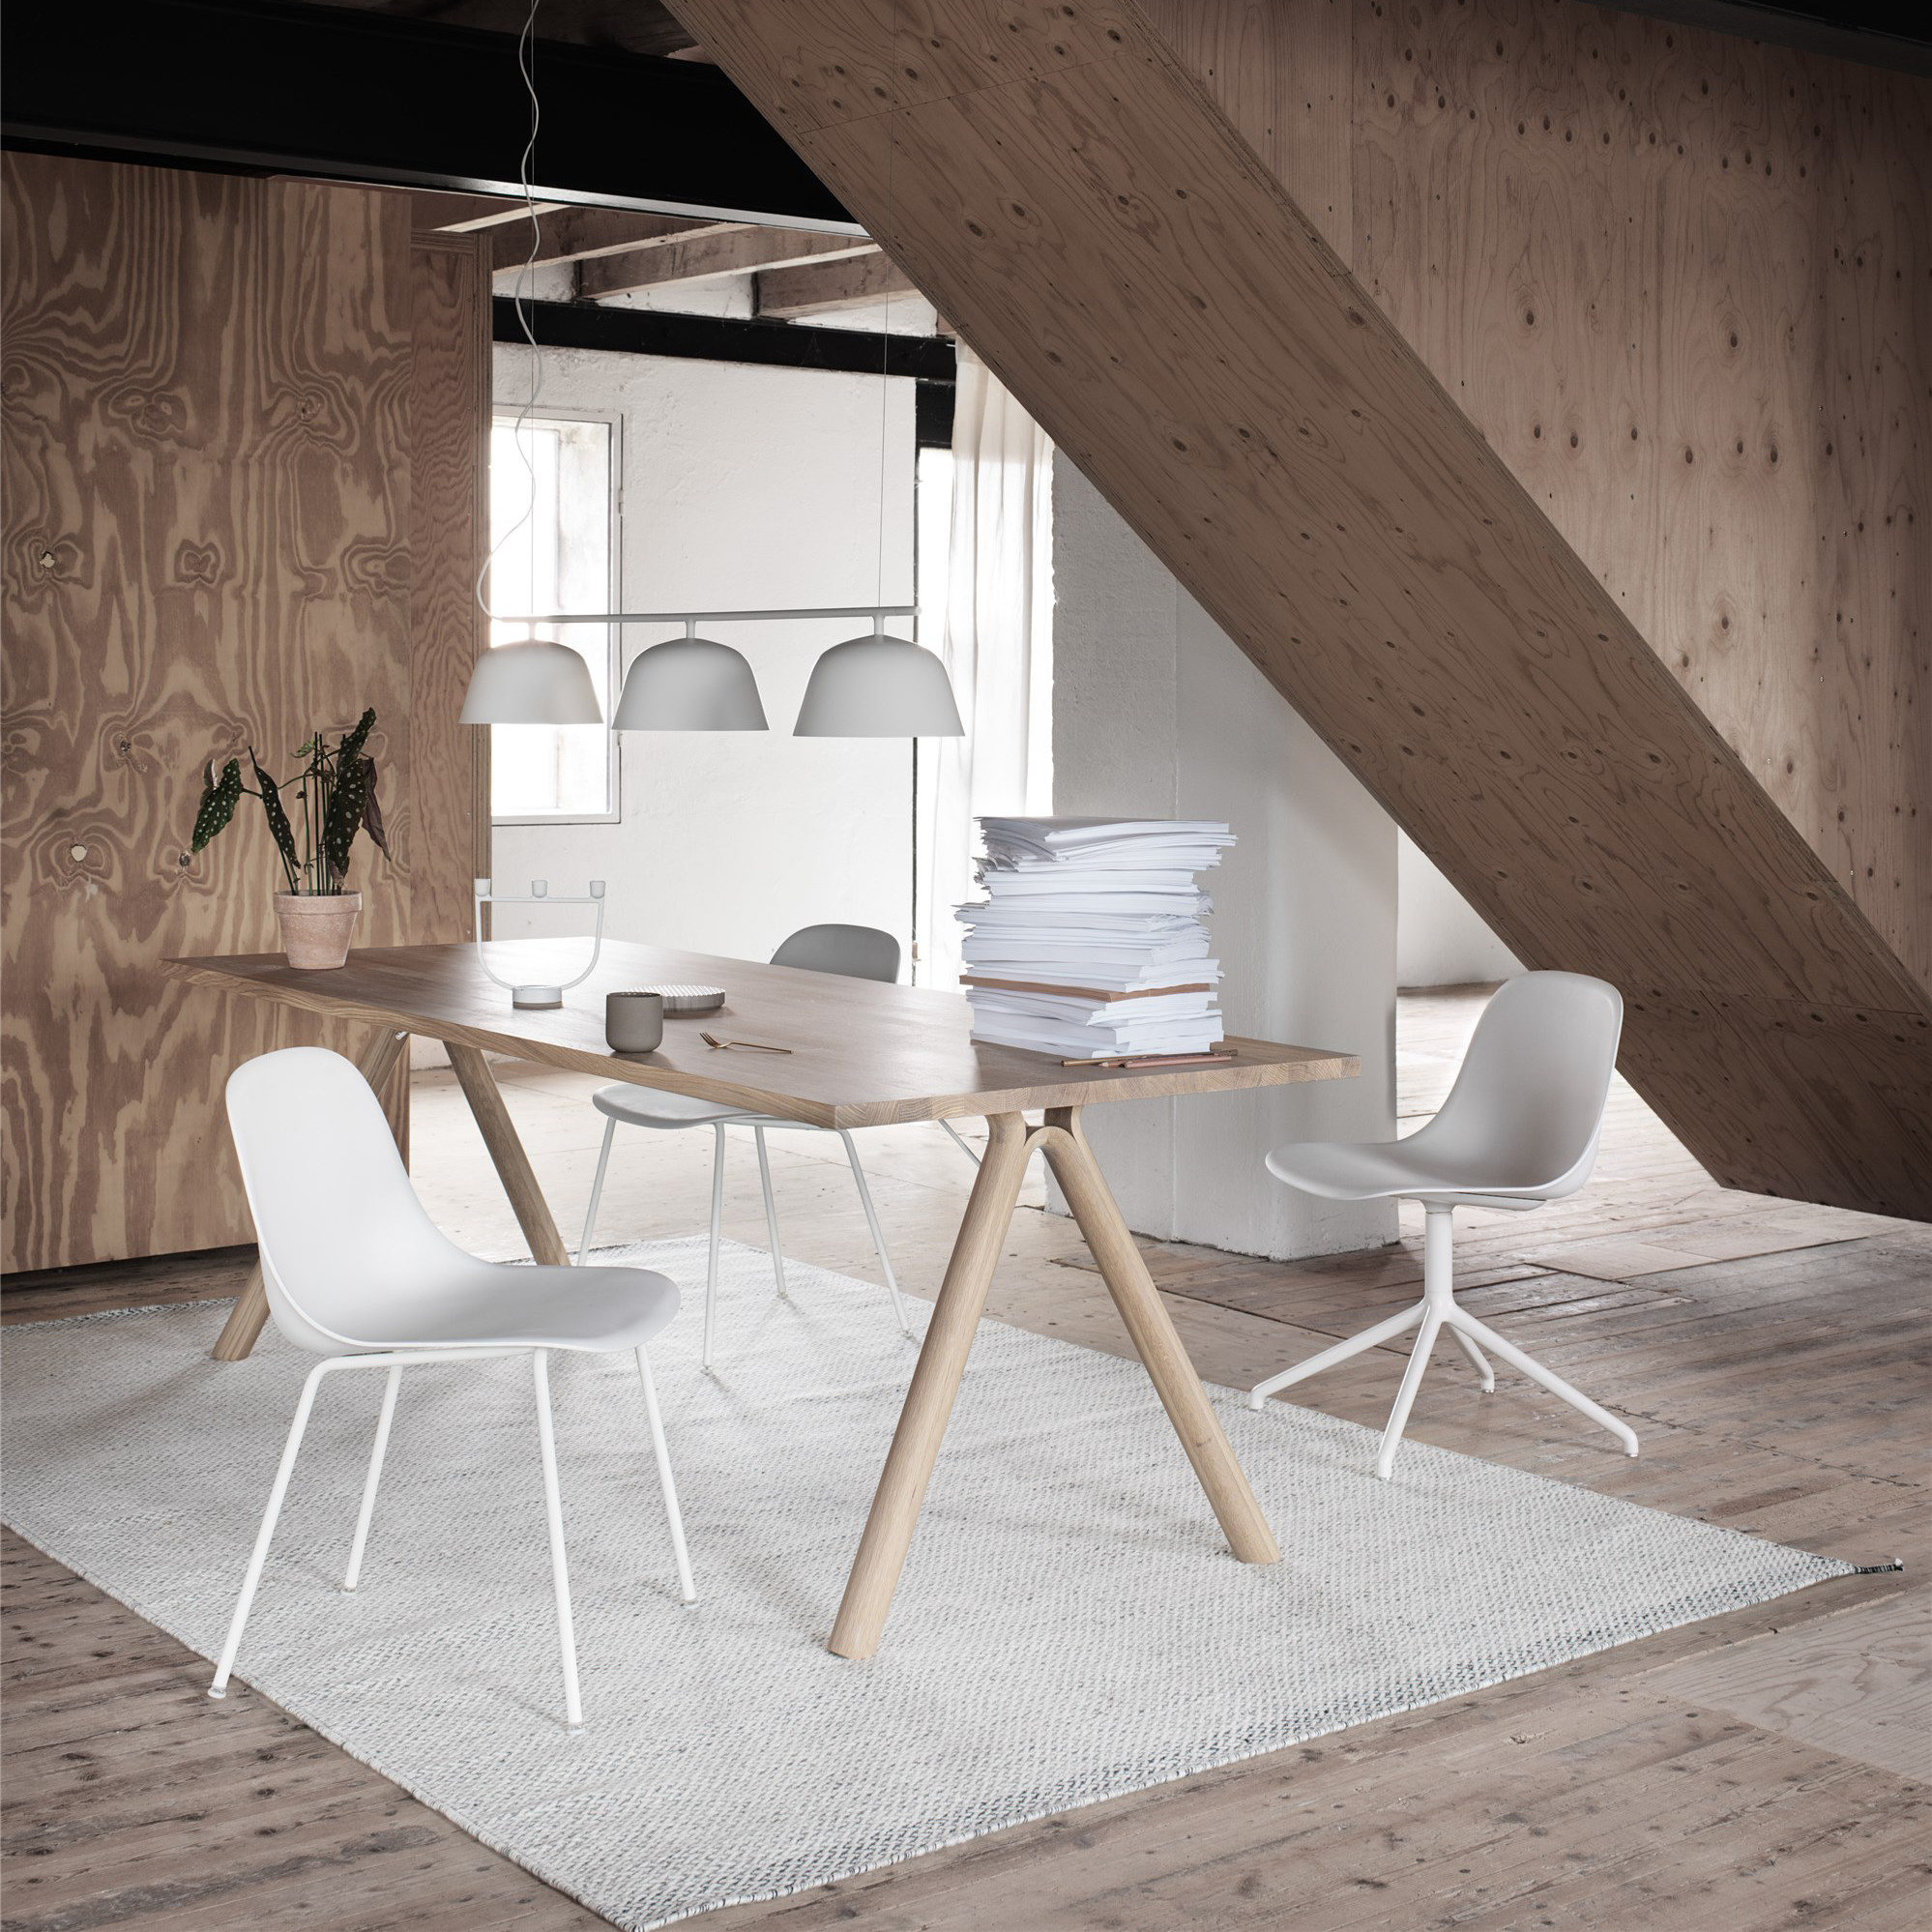 Muuto, Fiber Chair, White